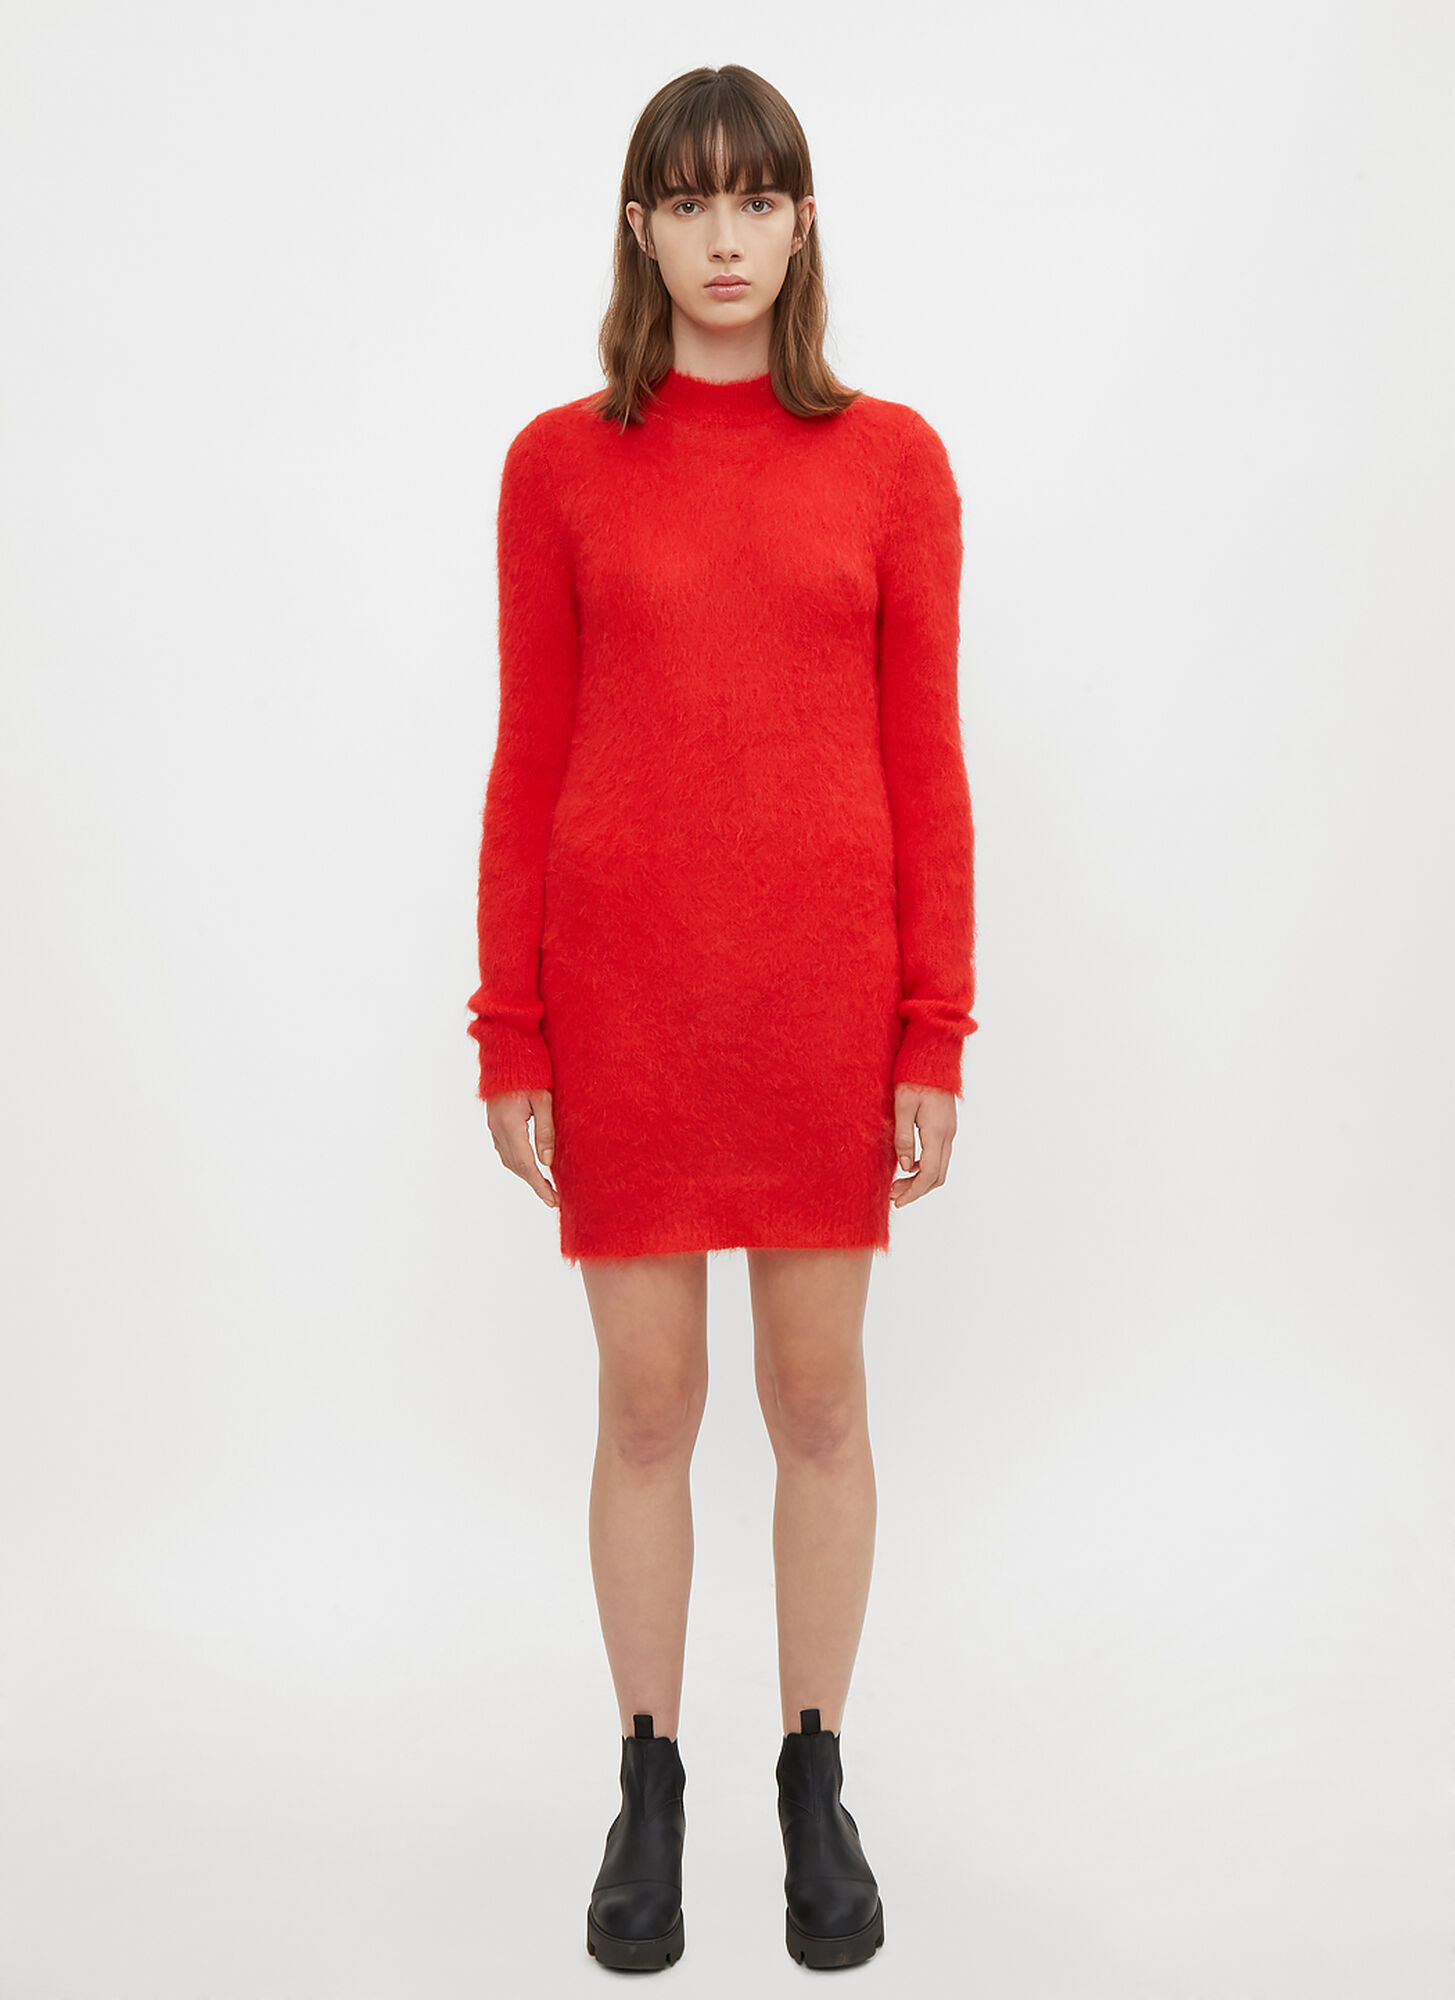 1017 ALYX 9SM Stevie Mohair Knit Dress in Red size XS